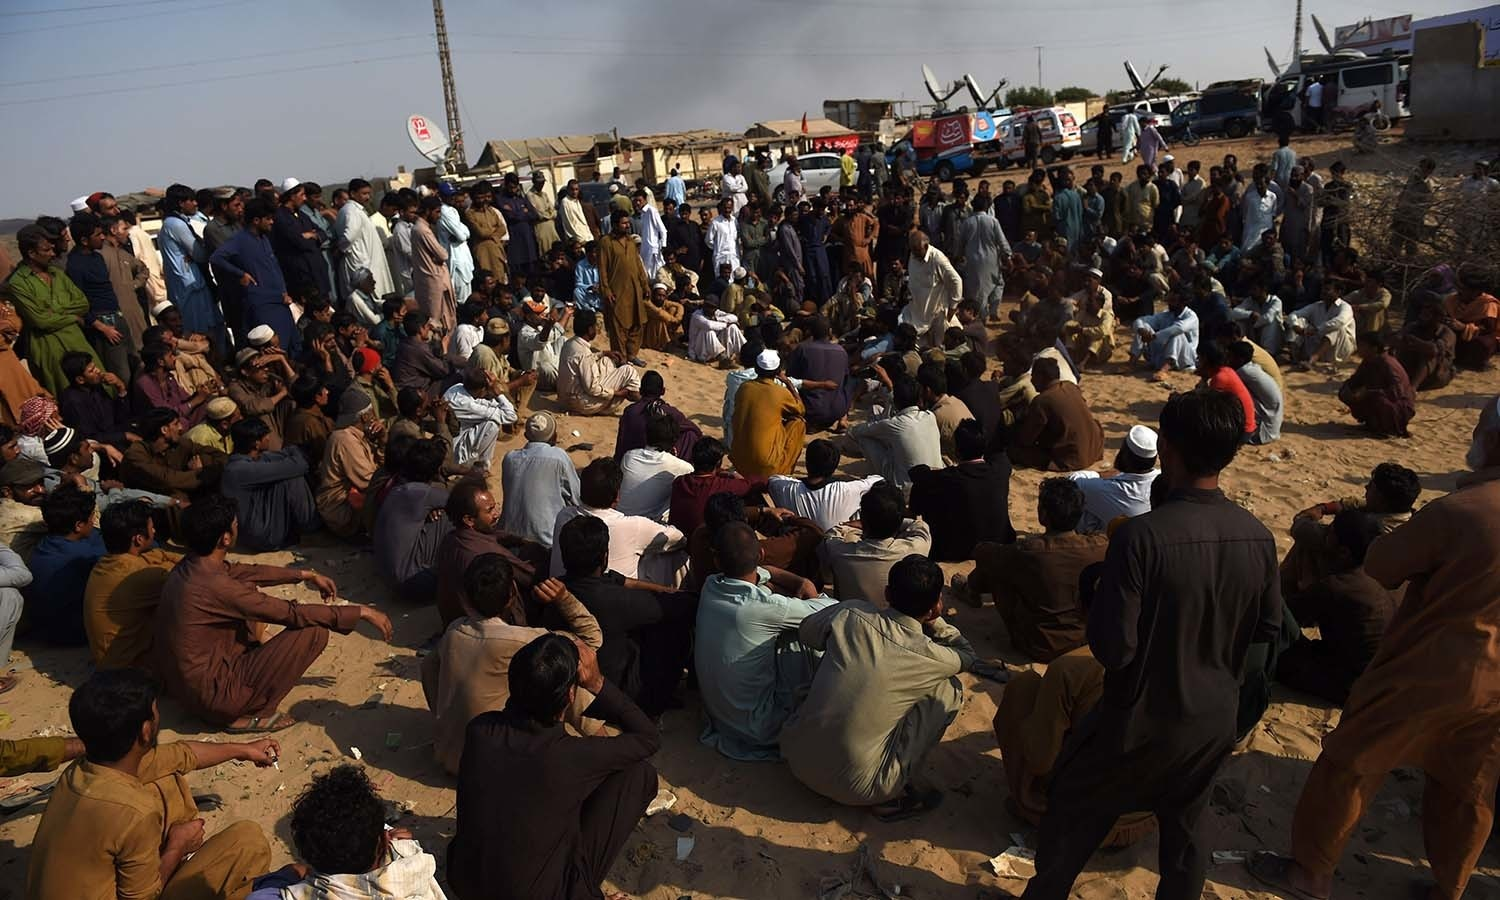 Labourers gather following a gas cylinder explosion at the Gadani shipbreaking yard. ─AFP